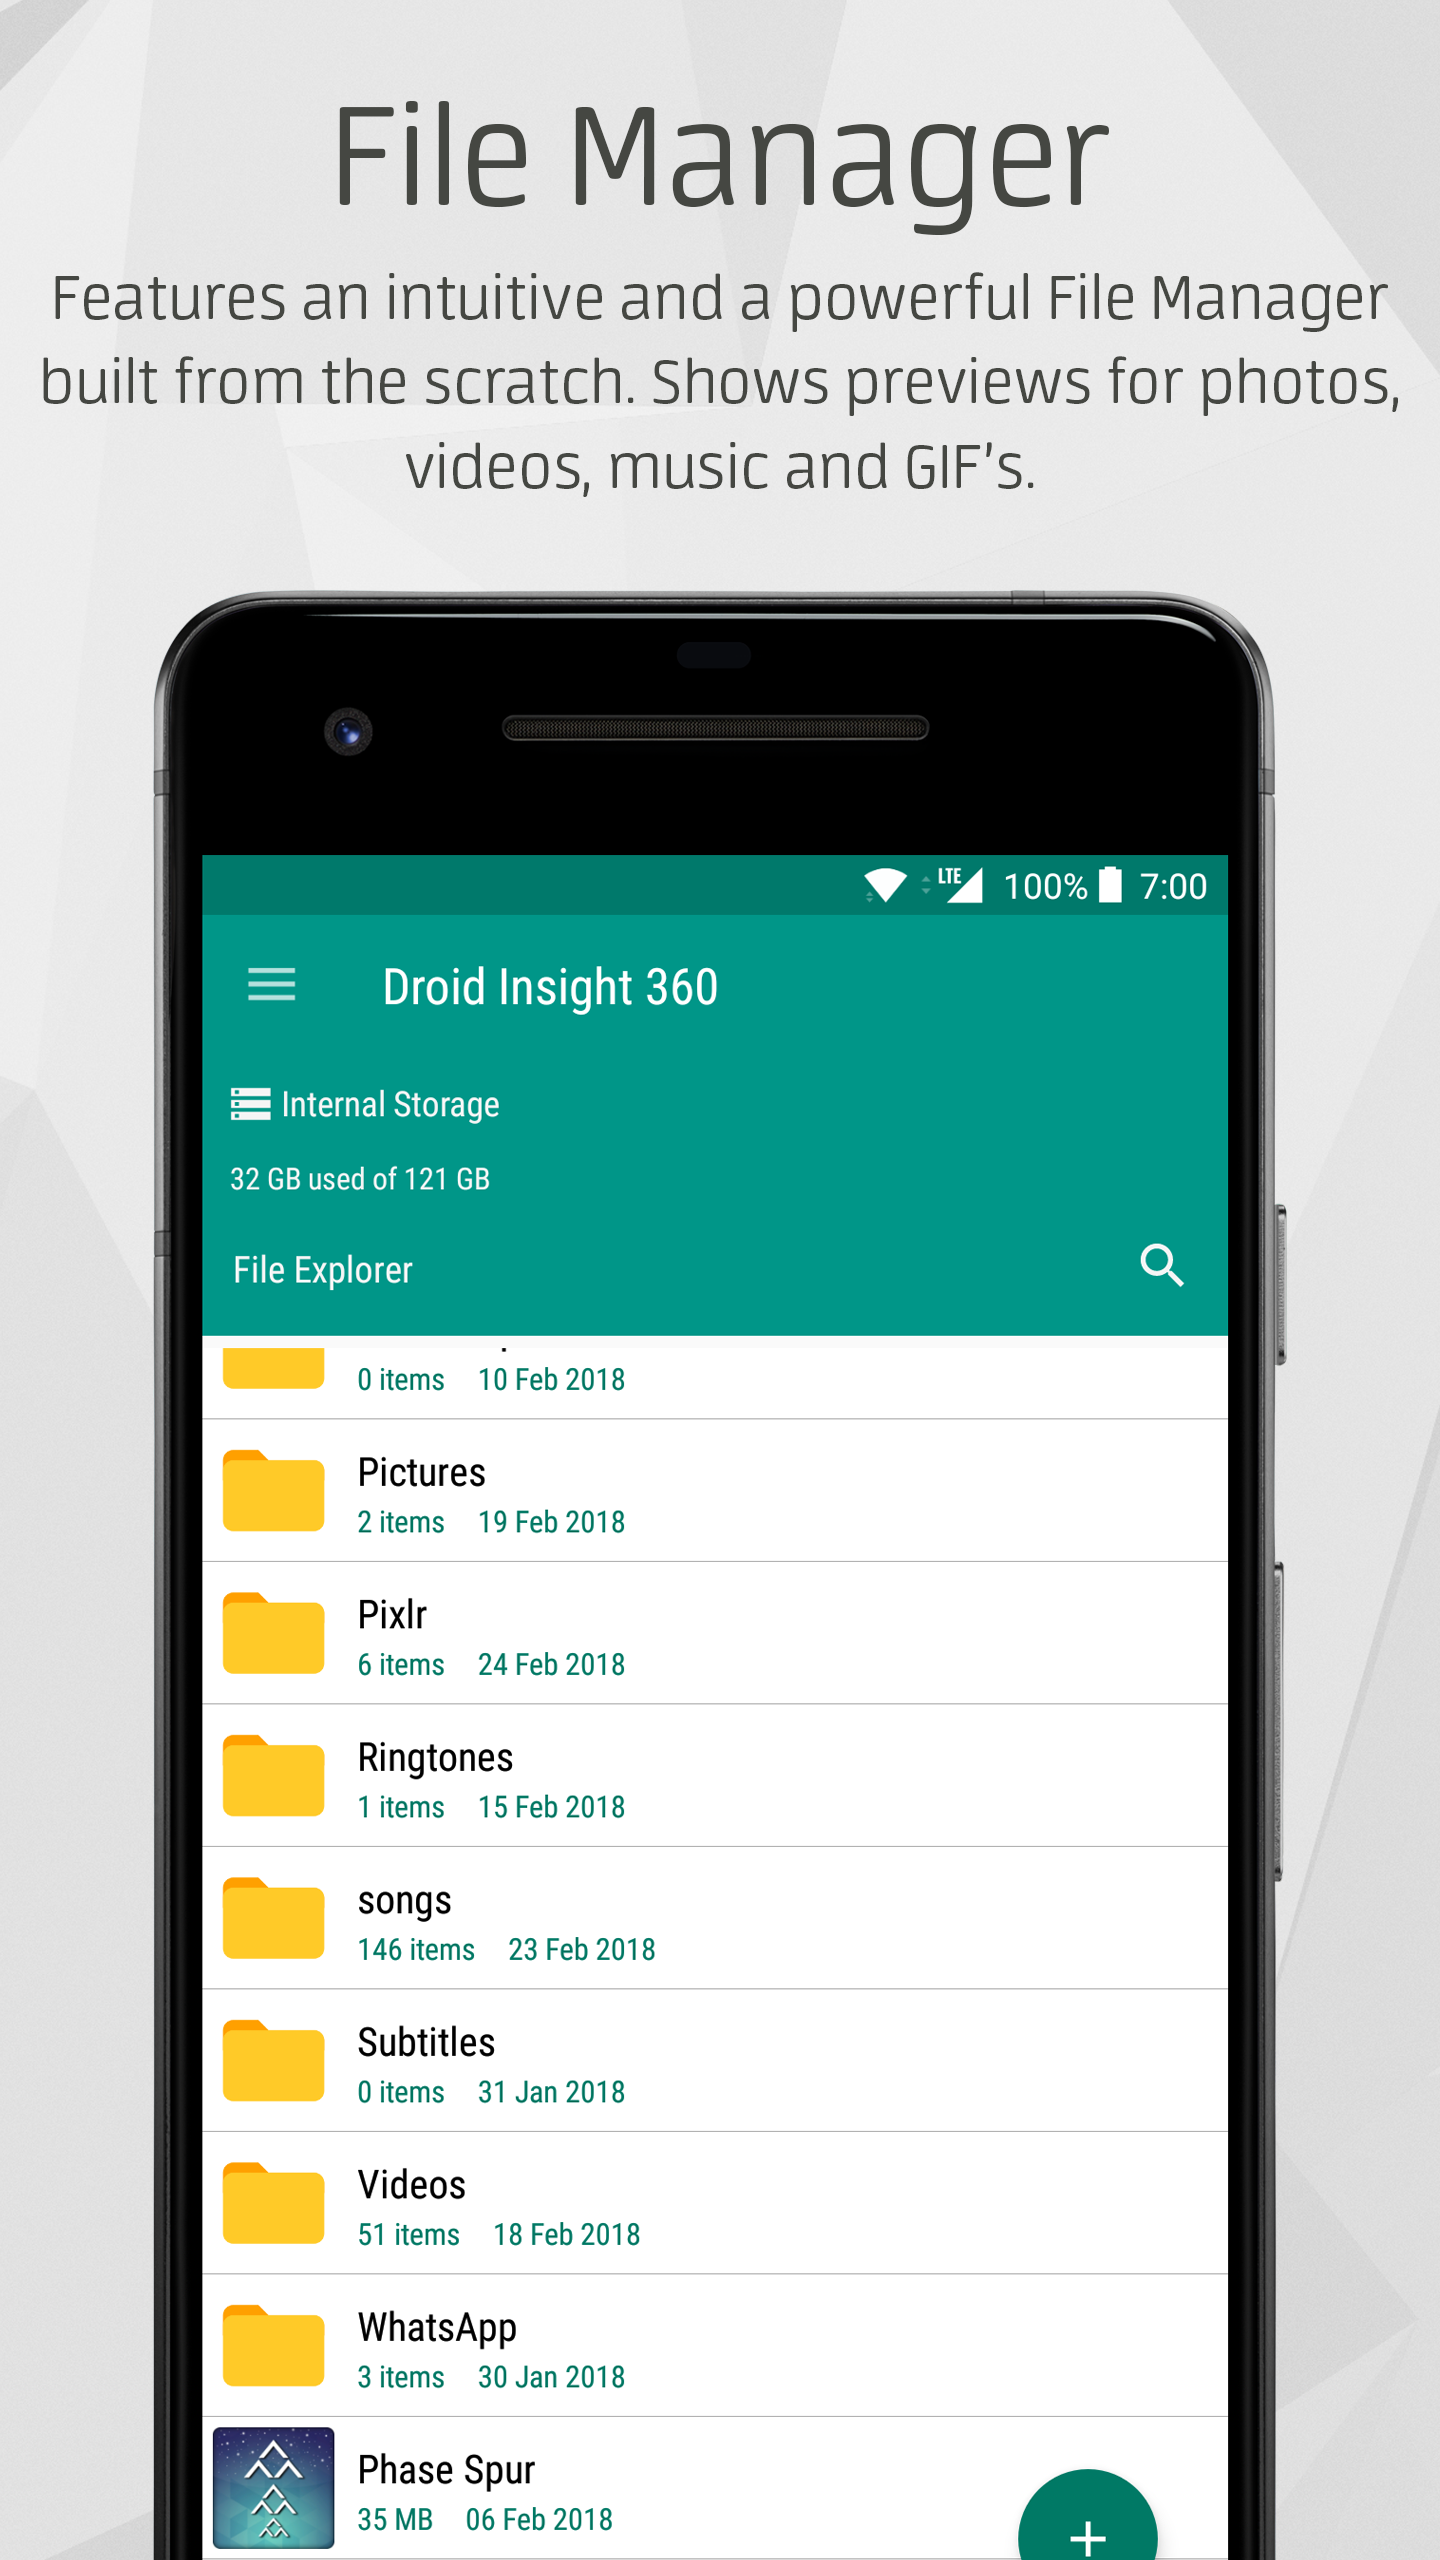 Droid Insight 360: Suite of five integrated Apps